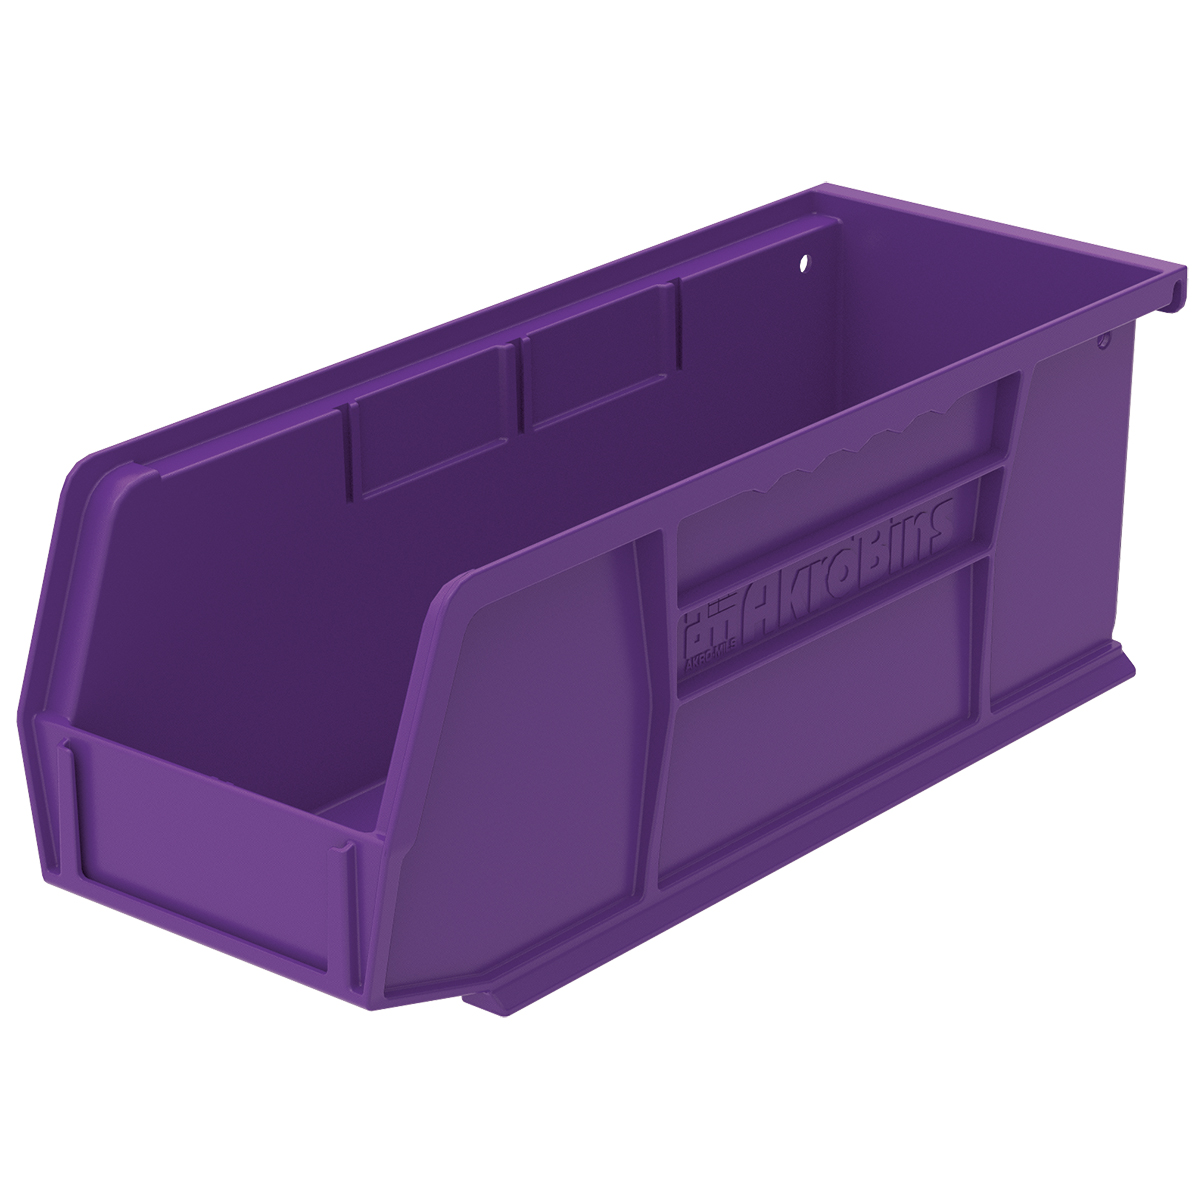 AkroBin 10-7/8 x 4-1/8 x 4, Purple (30224PURPL).  This item sold in carton quantities of 12.